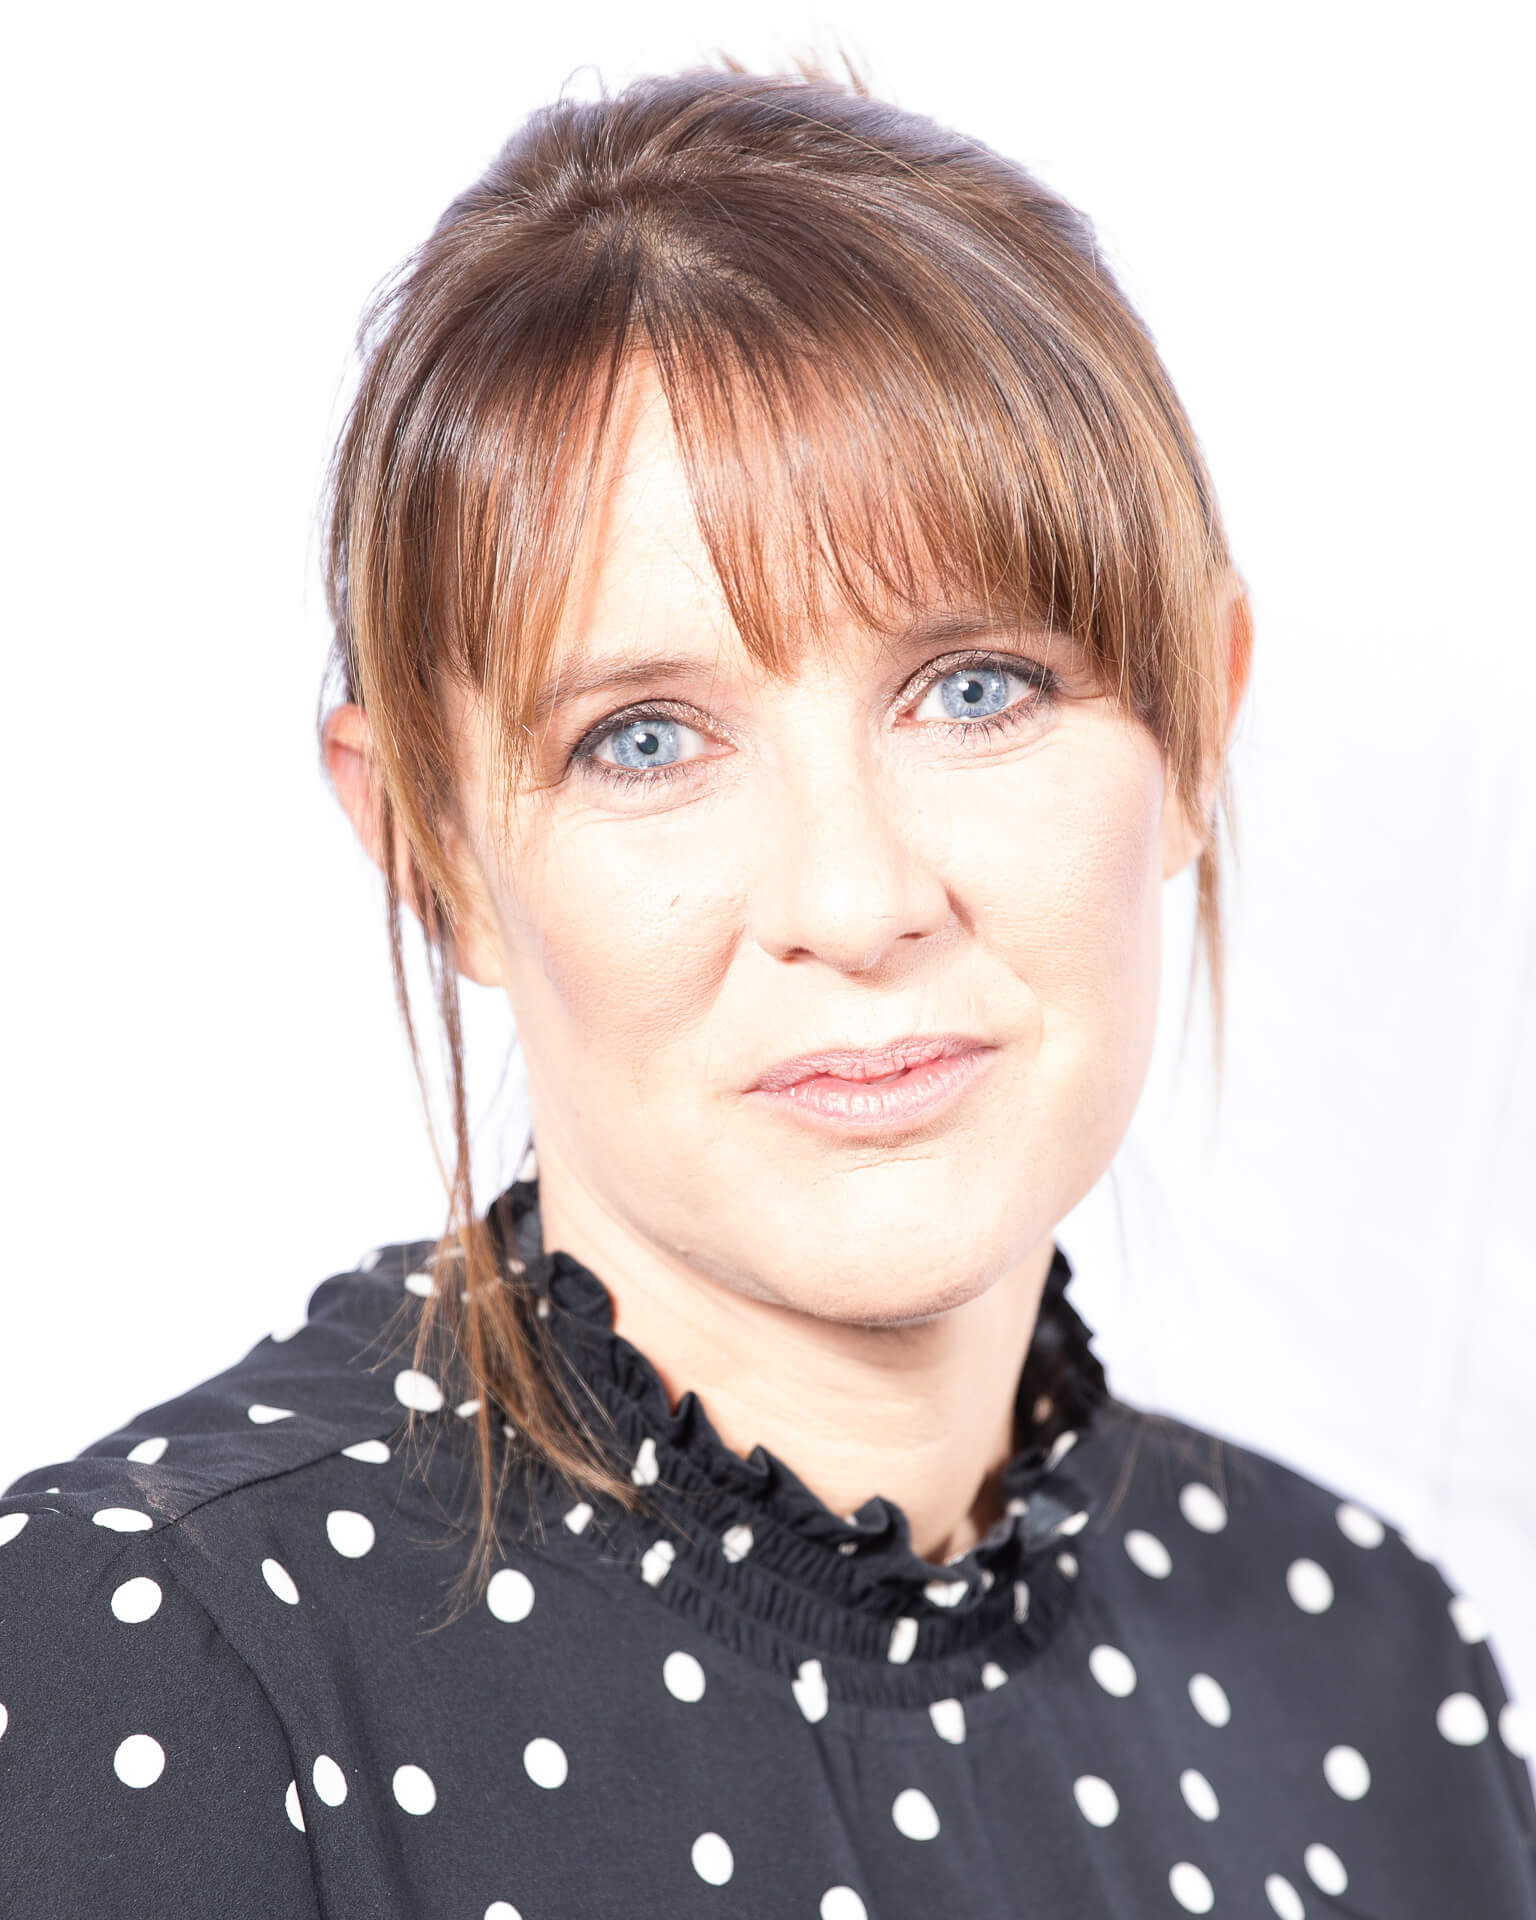 This colour head and shoulders image shows Sarah. Sarah poses in a 'typically standard' formal workplace type pose; she looks directly into the camera. Sarah has vivid blue eyes and is wearing a white spotted black top. Sarah is employed by a funeral directors.